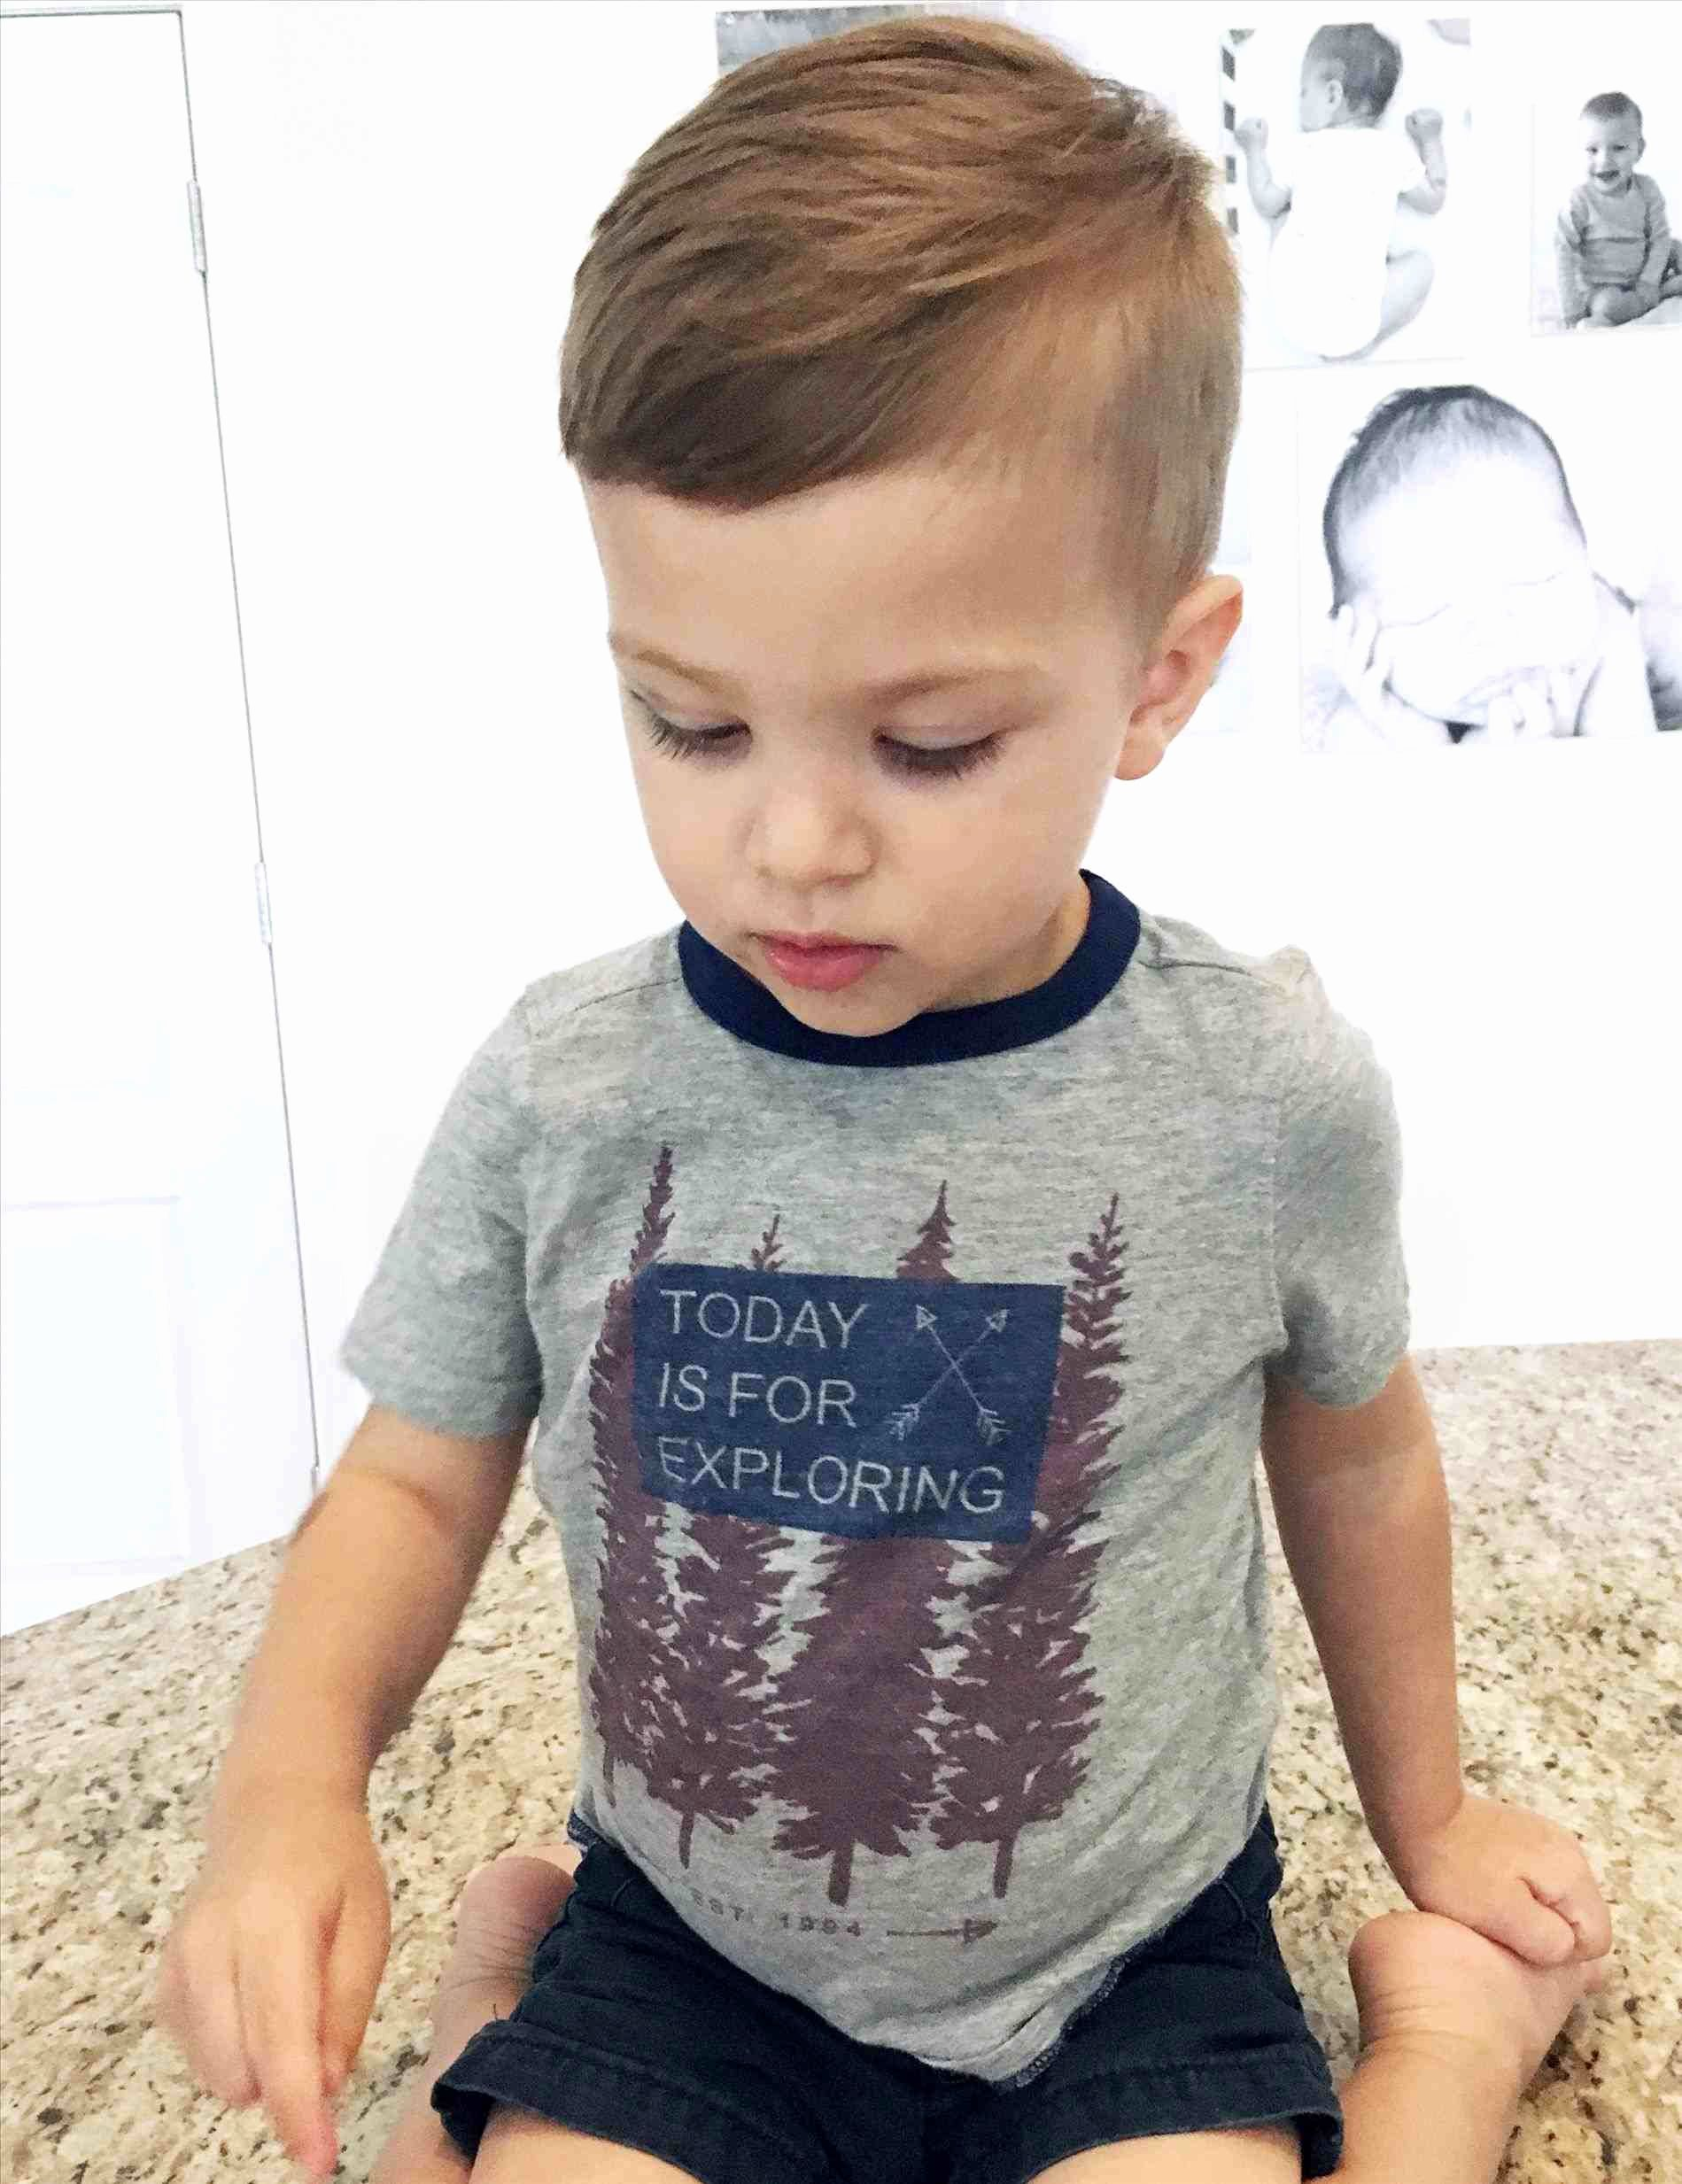 Boy Toddler Haircuts Magnificent Japanese Toddler Boy Hairstyle Toddler Boy Haircuts Choice Image Baby Boy Hairstyles Toddler Haircuts Toddler Hairstyles Boy